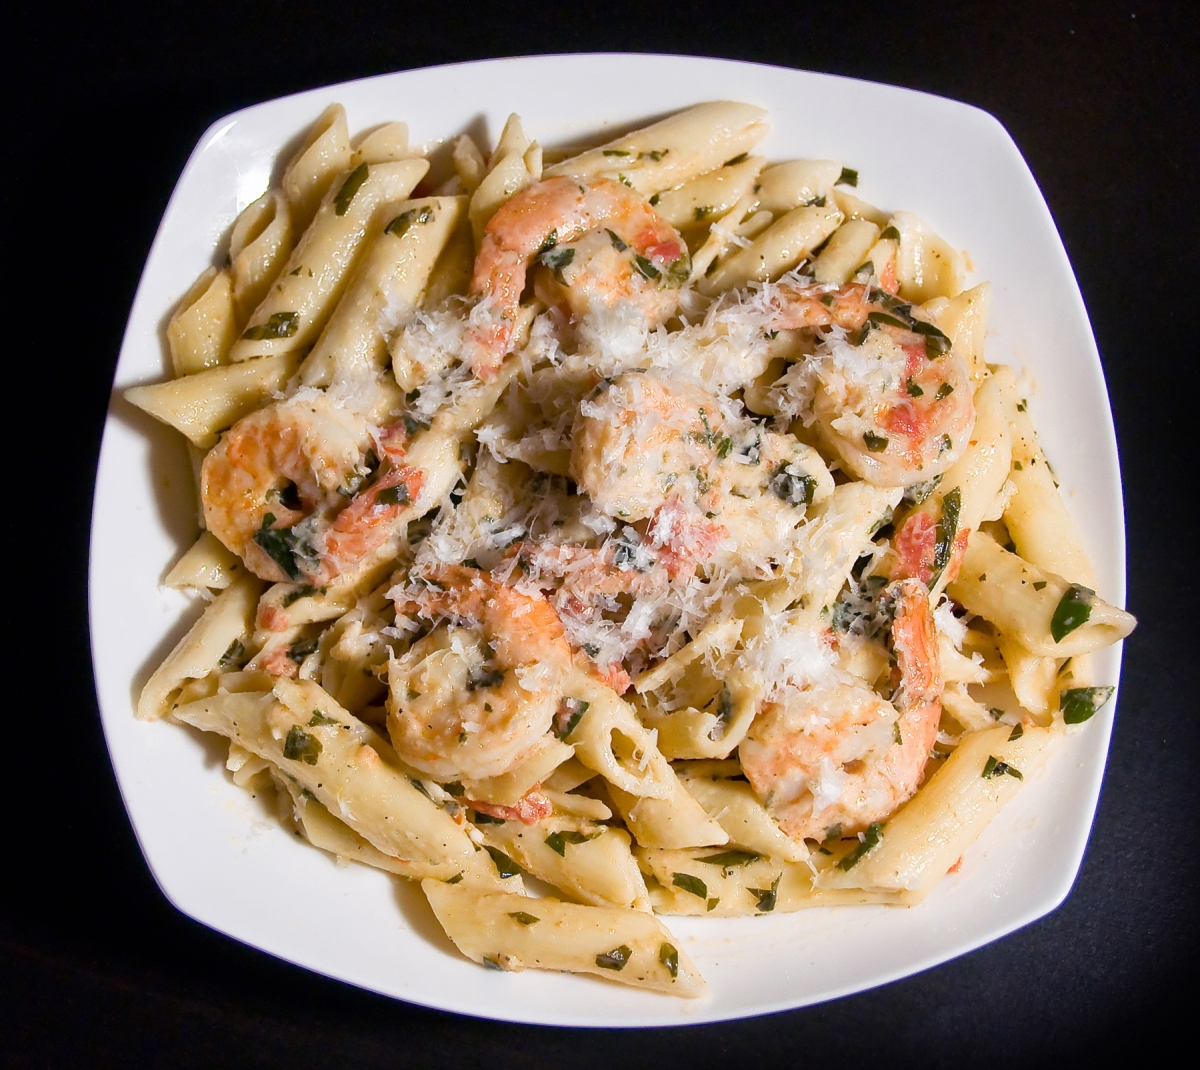 Shrimp with Penne in Herbed Cream Sauce